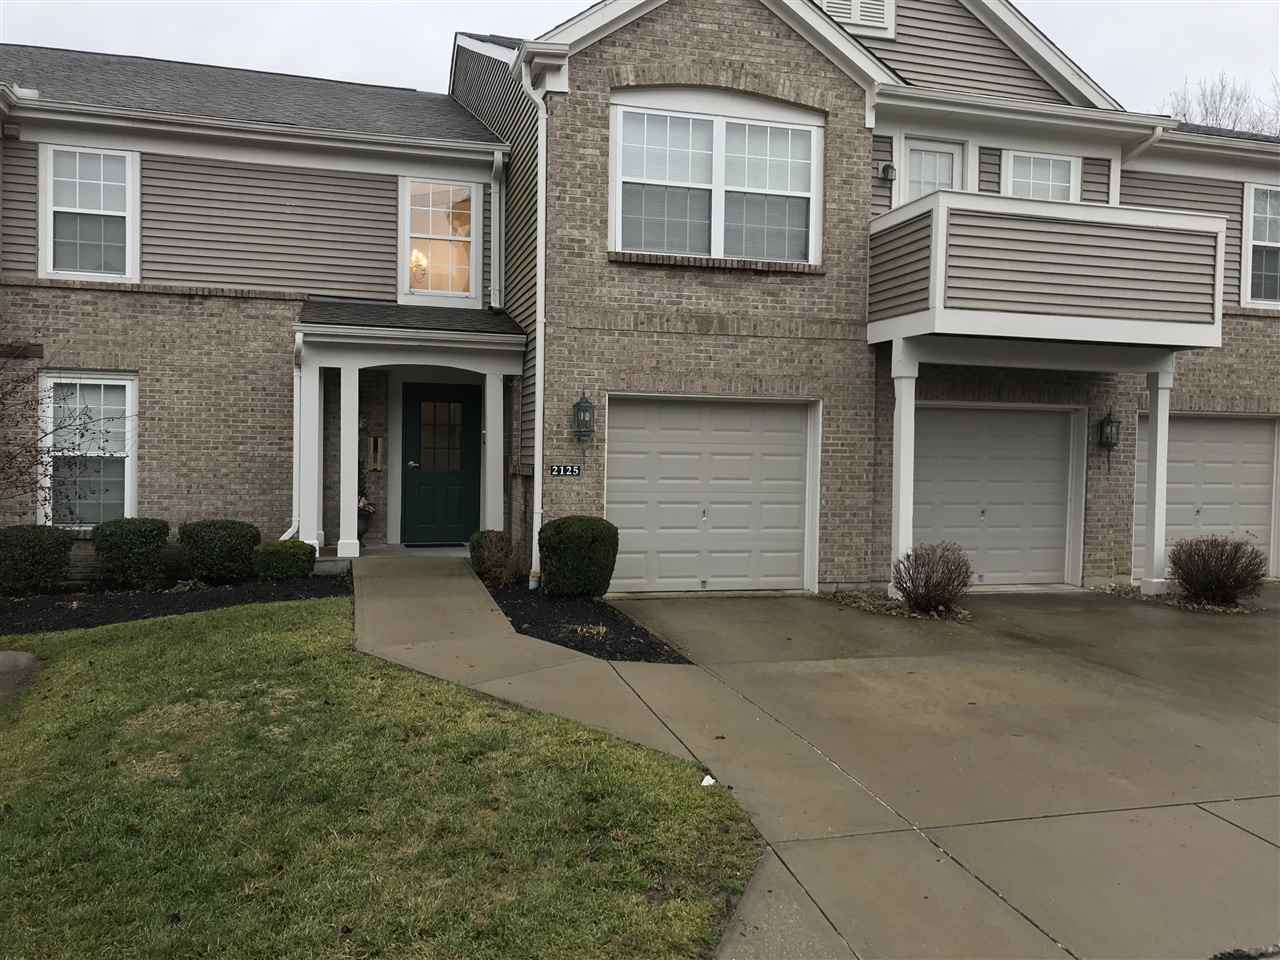 Photo 1 for 2125 Carrick Ct, 103 Crescent Springs, KY 41017